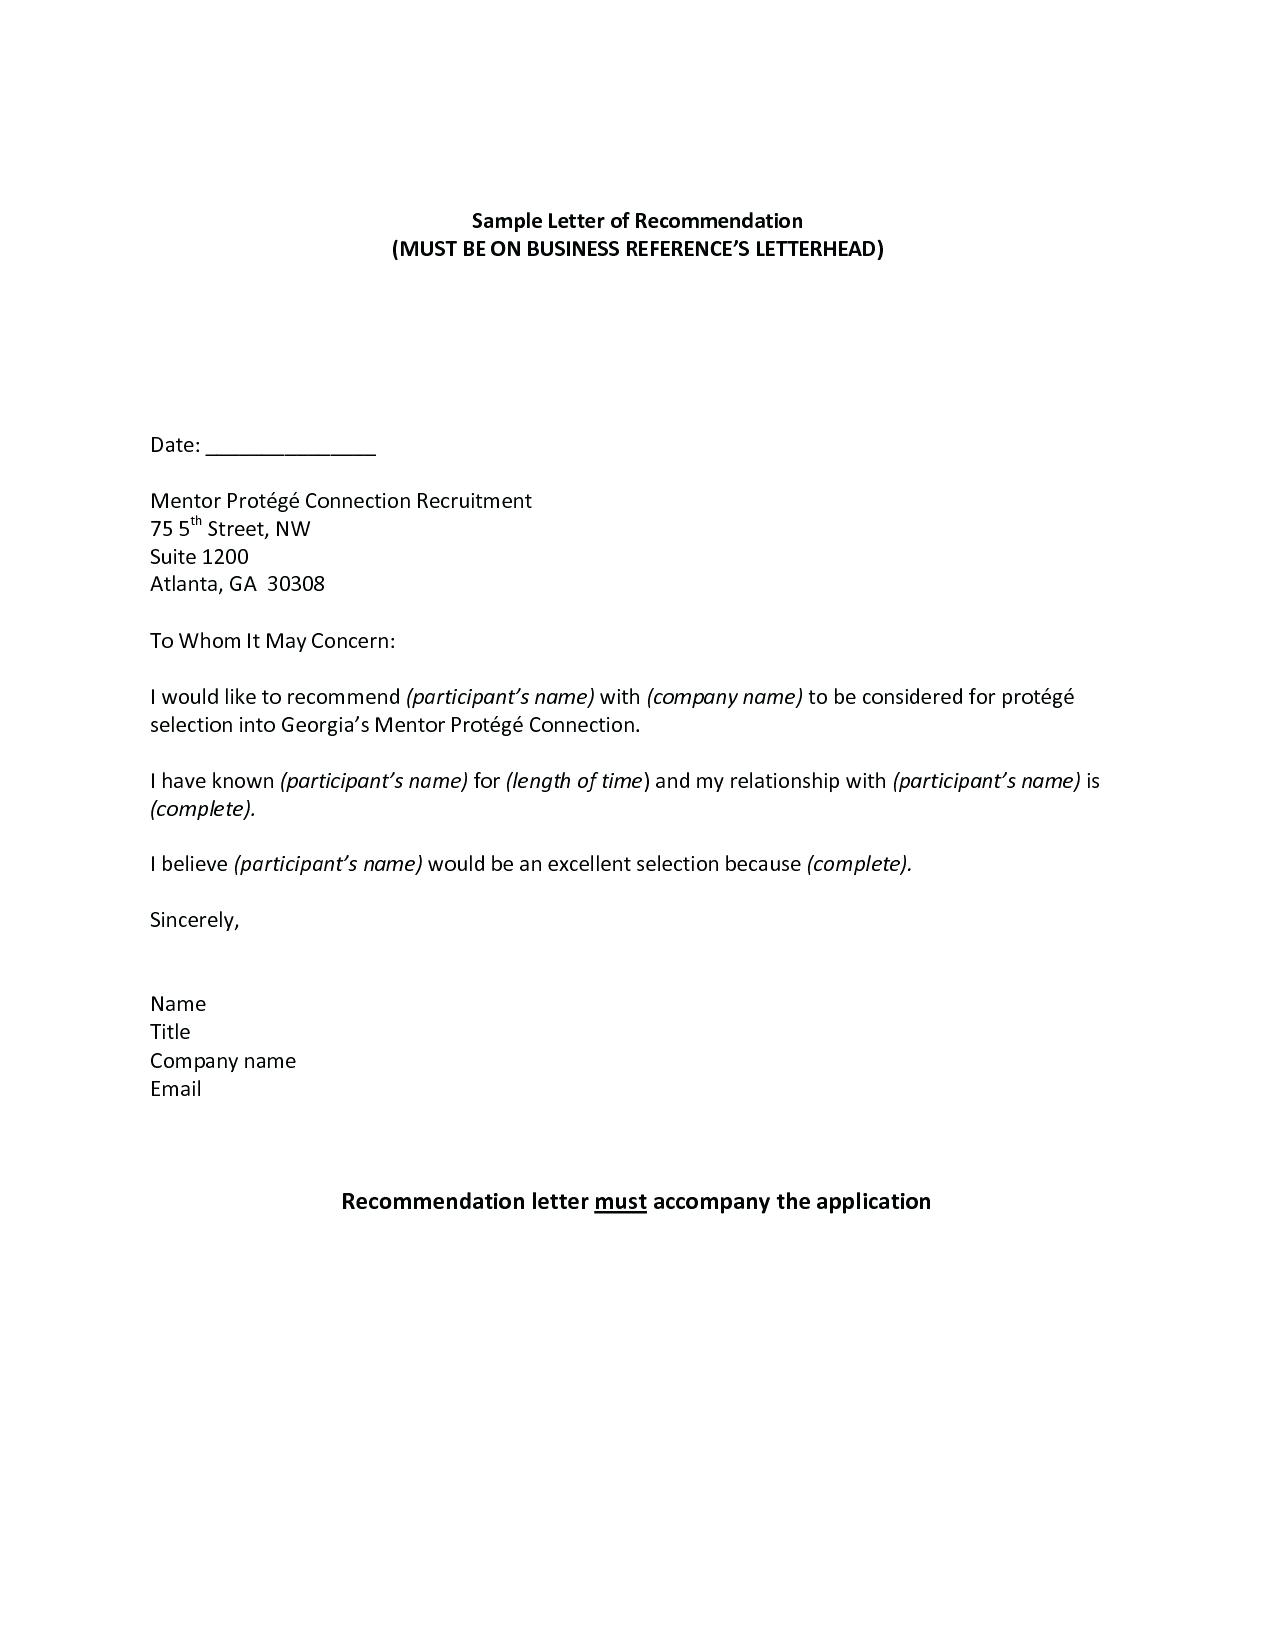 Mortgage Reference Letter From Employer Template Samples | Letter ...